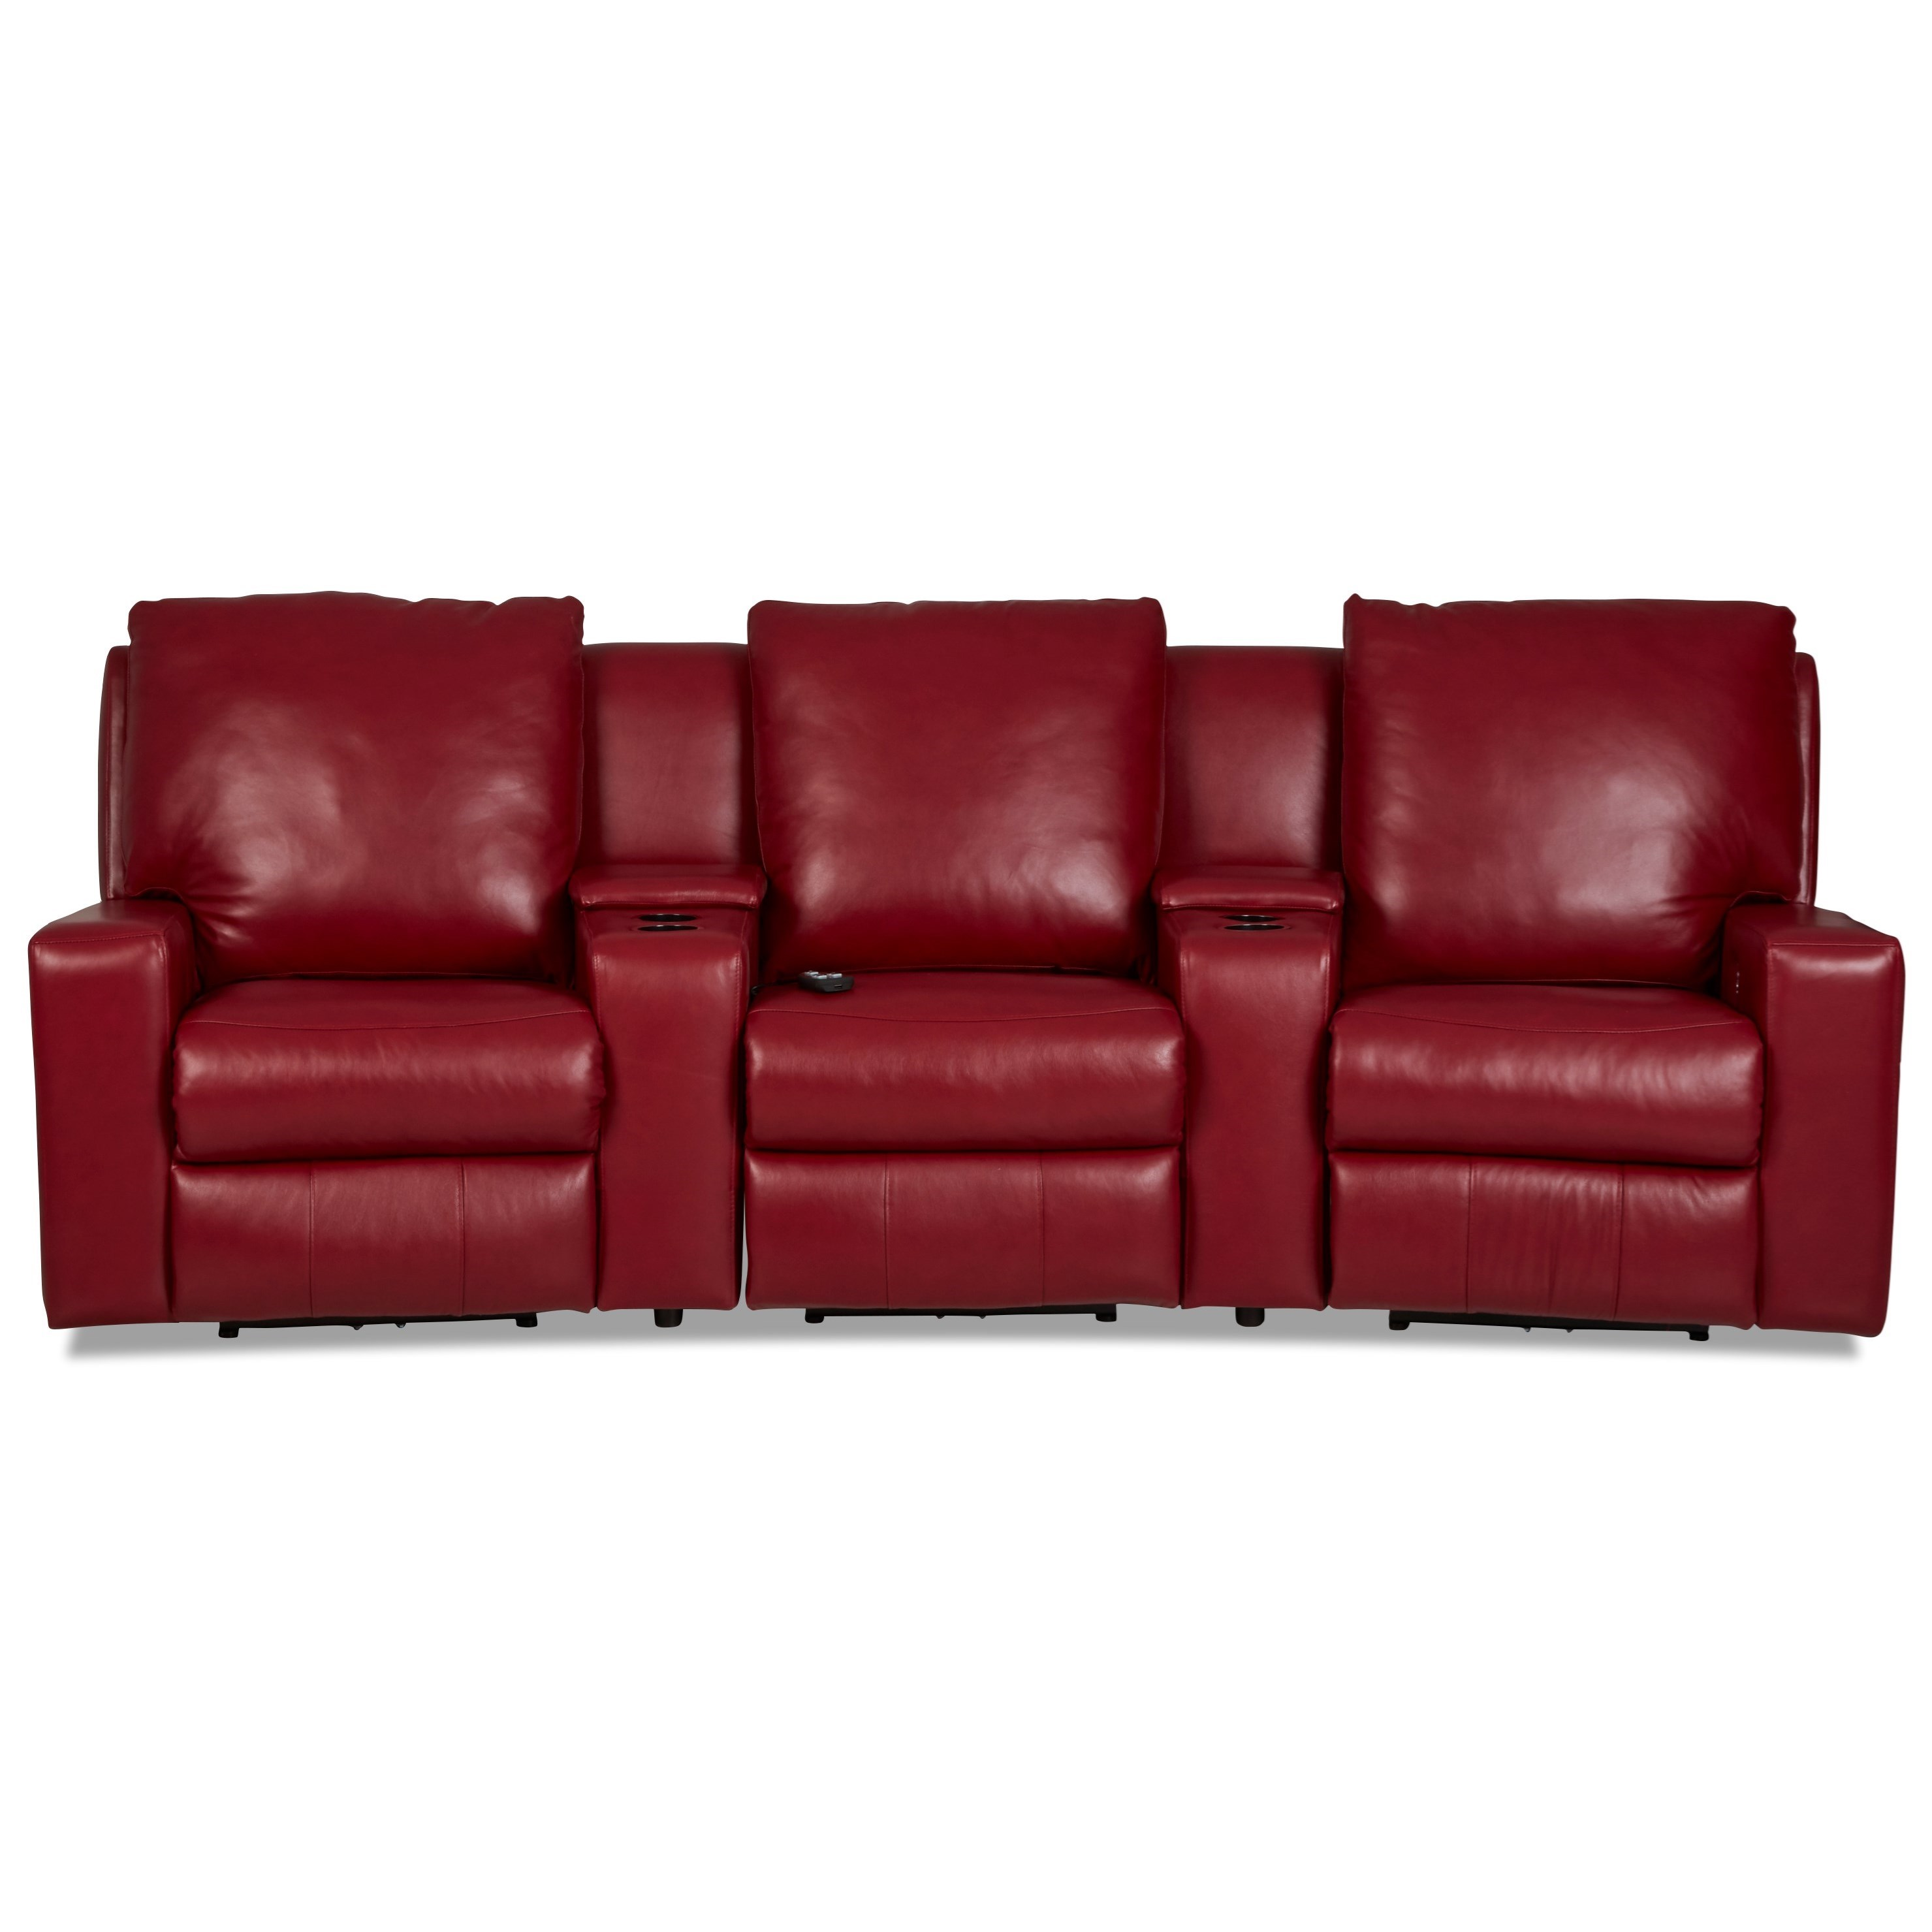 Alliser 3-Seat Theater Seating Group by Klaussner at Catalog Outlet